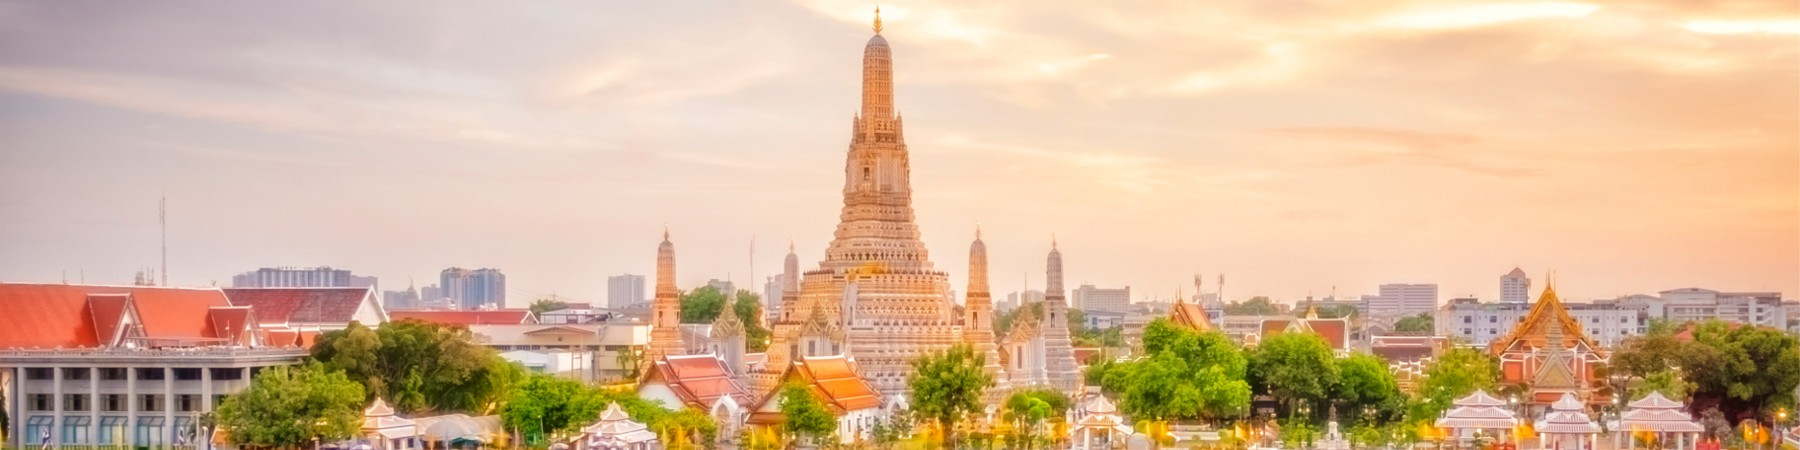 wat-arun-temple-of-dawn